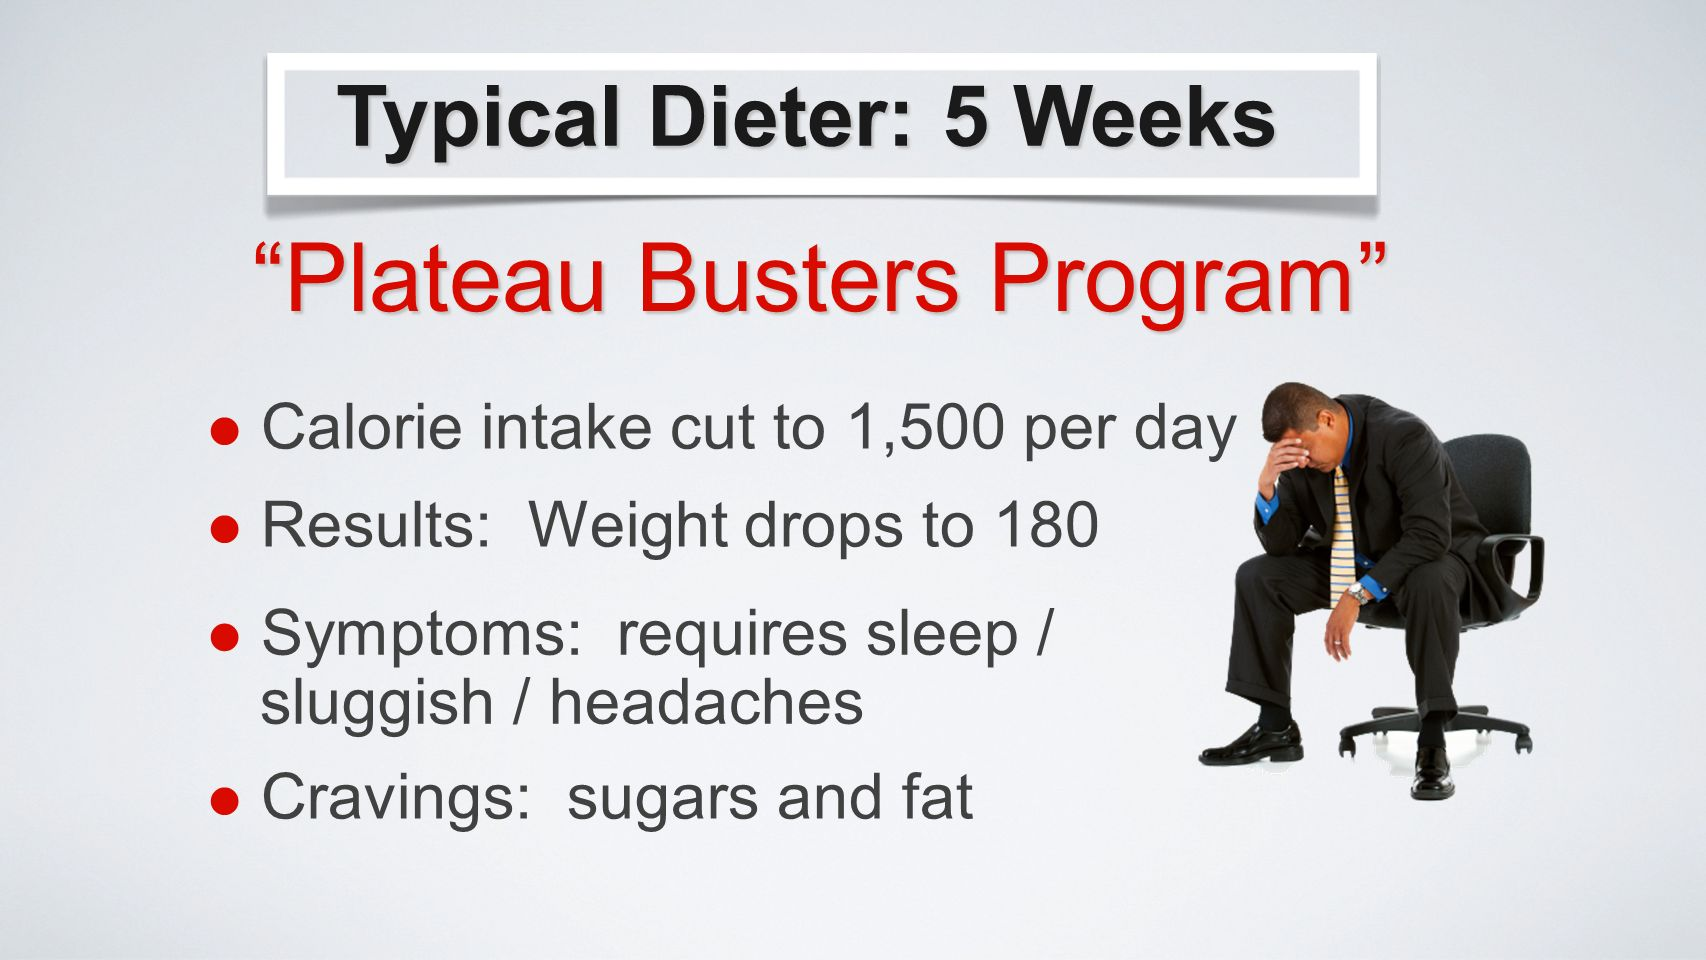 Calorie intake cut to 1,500 per day Typical Dieter: 5 Weeks Plateau Busters Program Results: Weight drops to 180 Symptoms: requires sleep / sluggish / headaches Cravings: sugars and fat